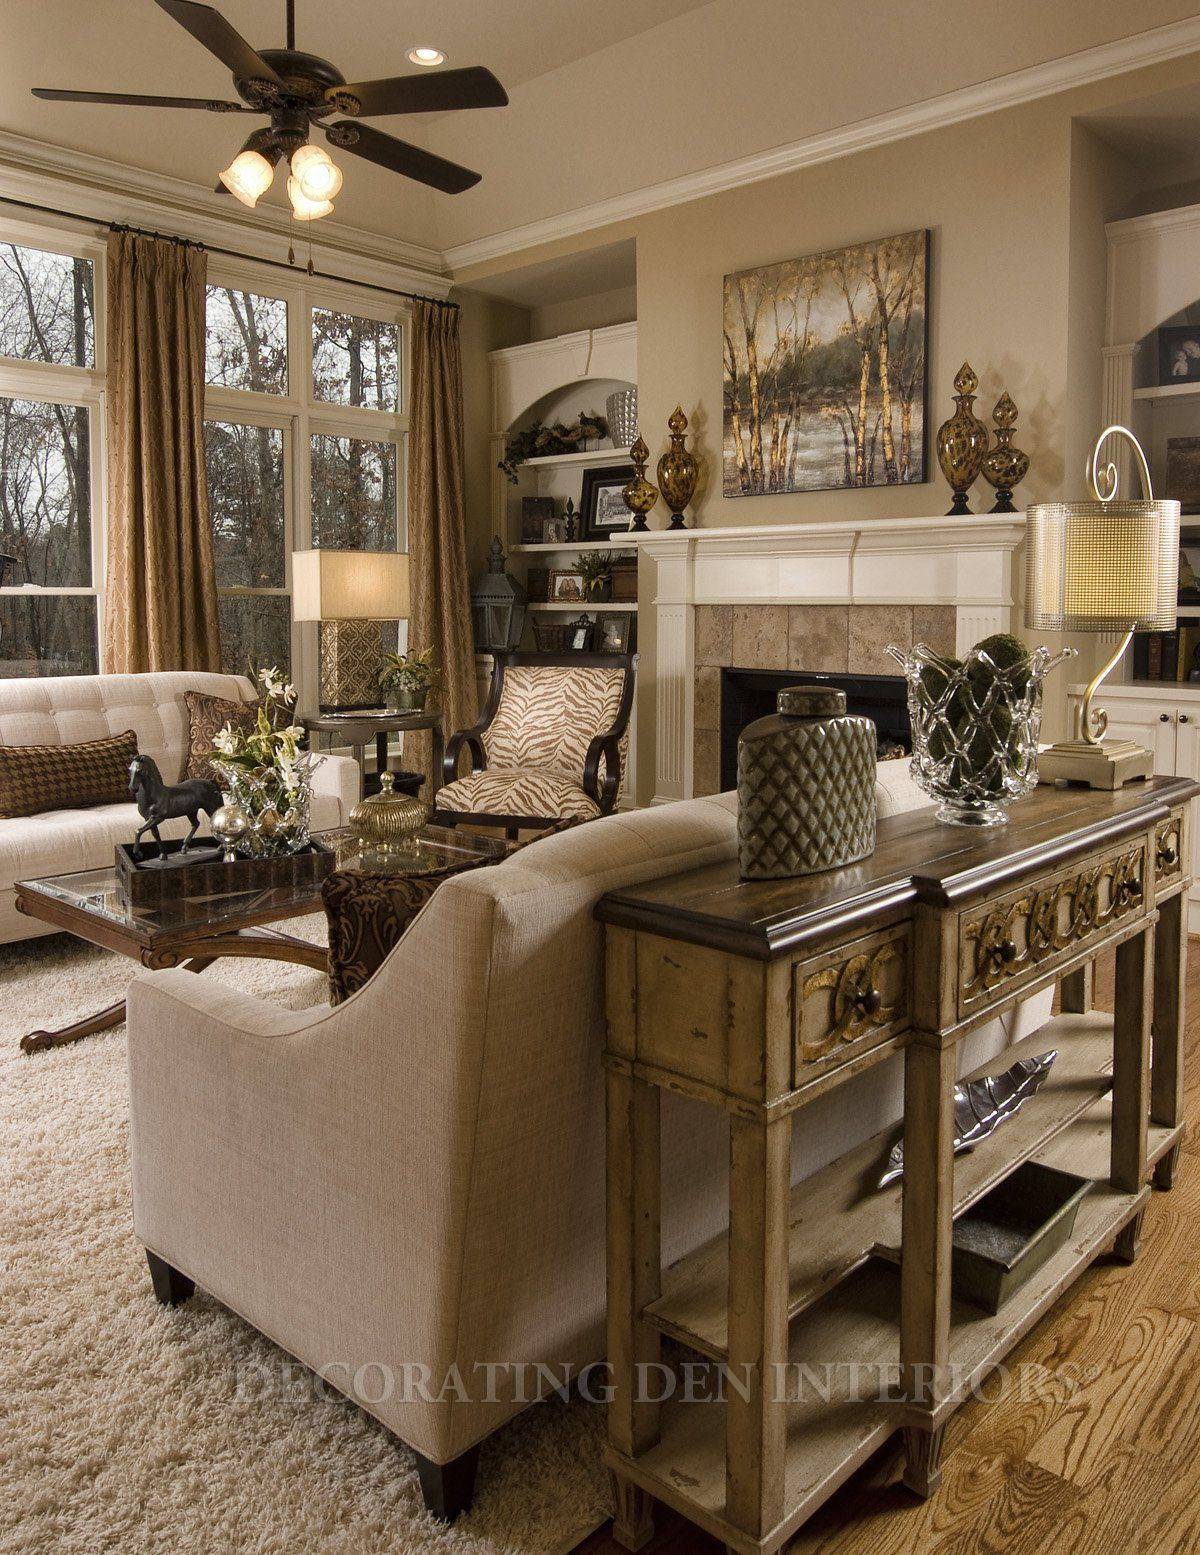 Room designed by Tracy Pulsipher | Home decor | Pinterest | Neues ...